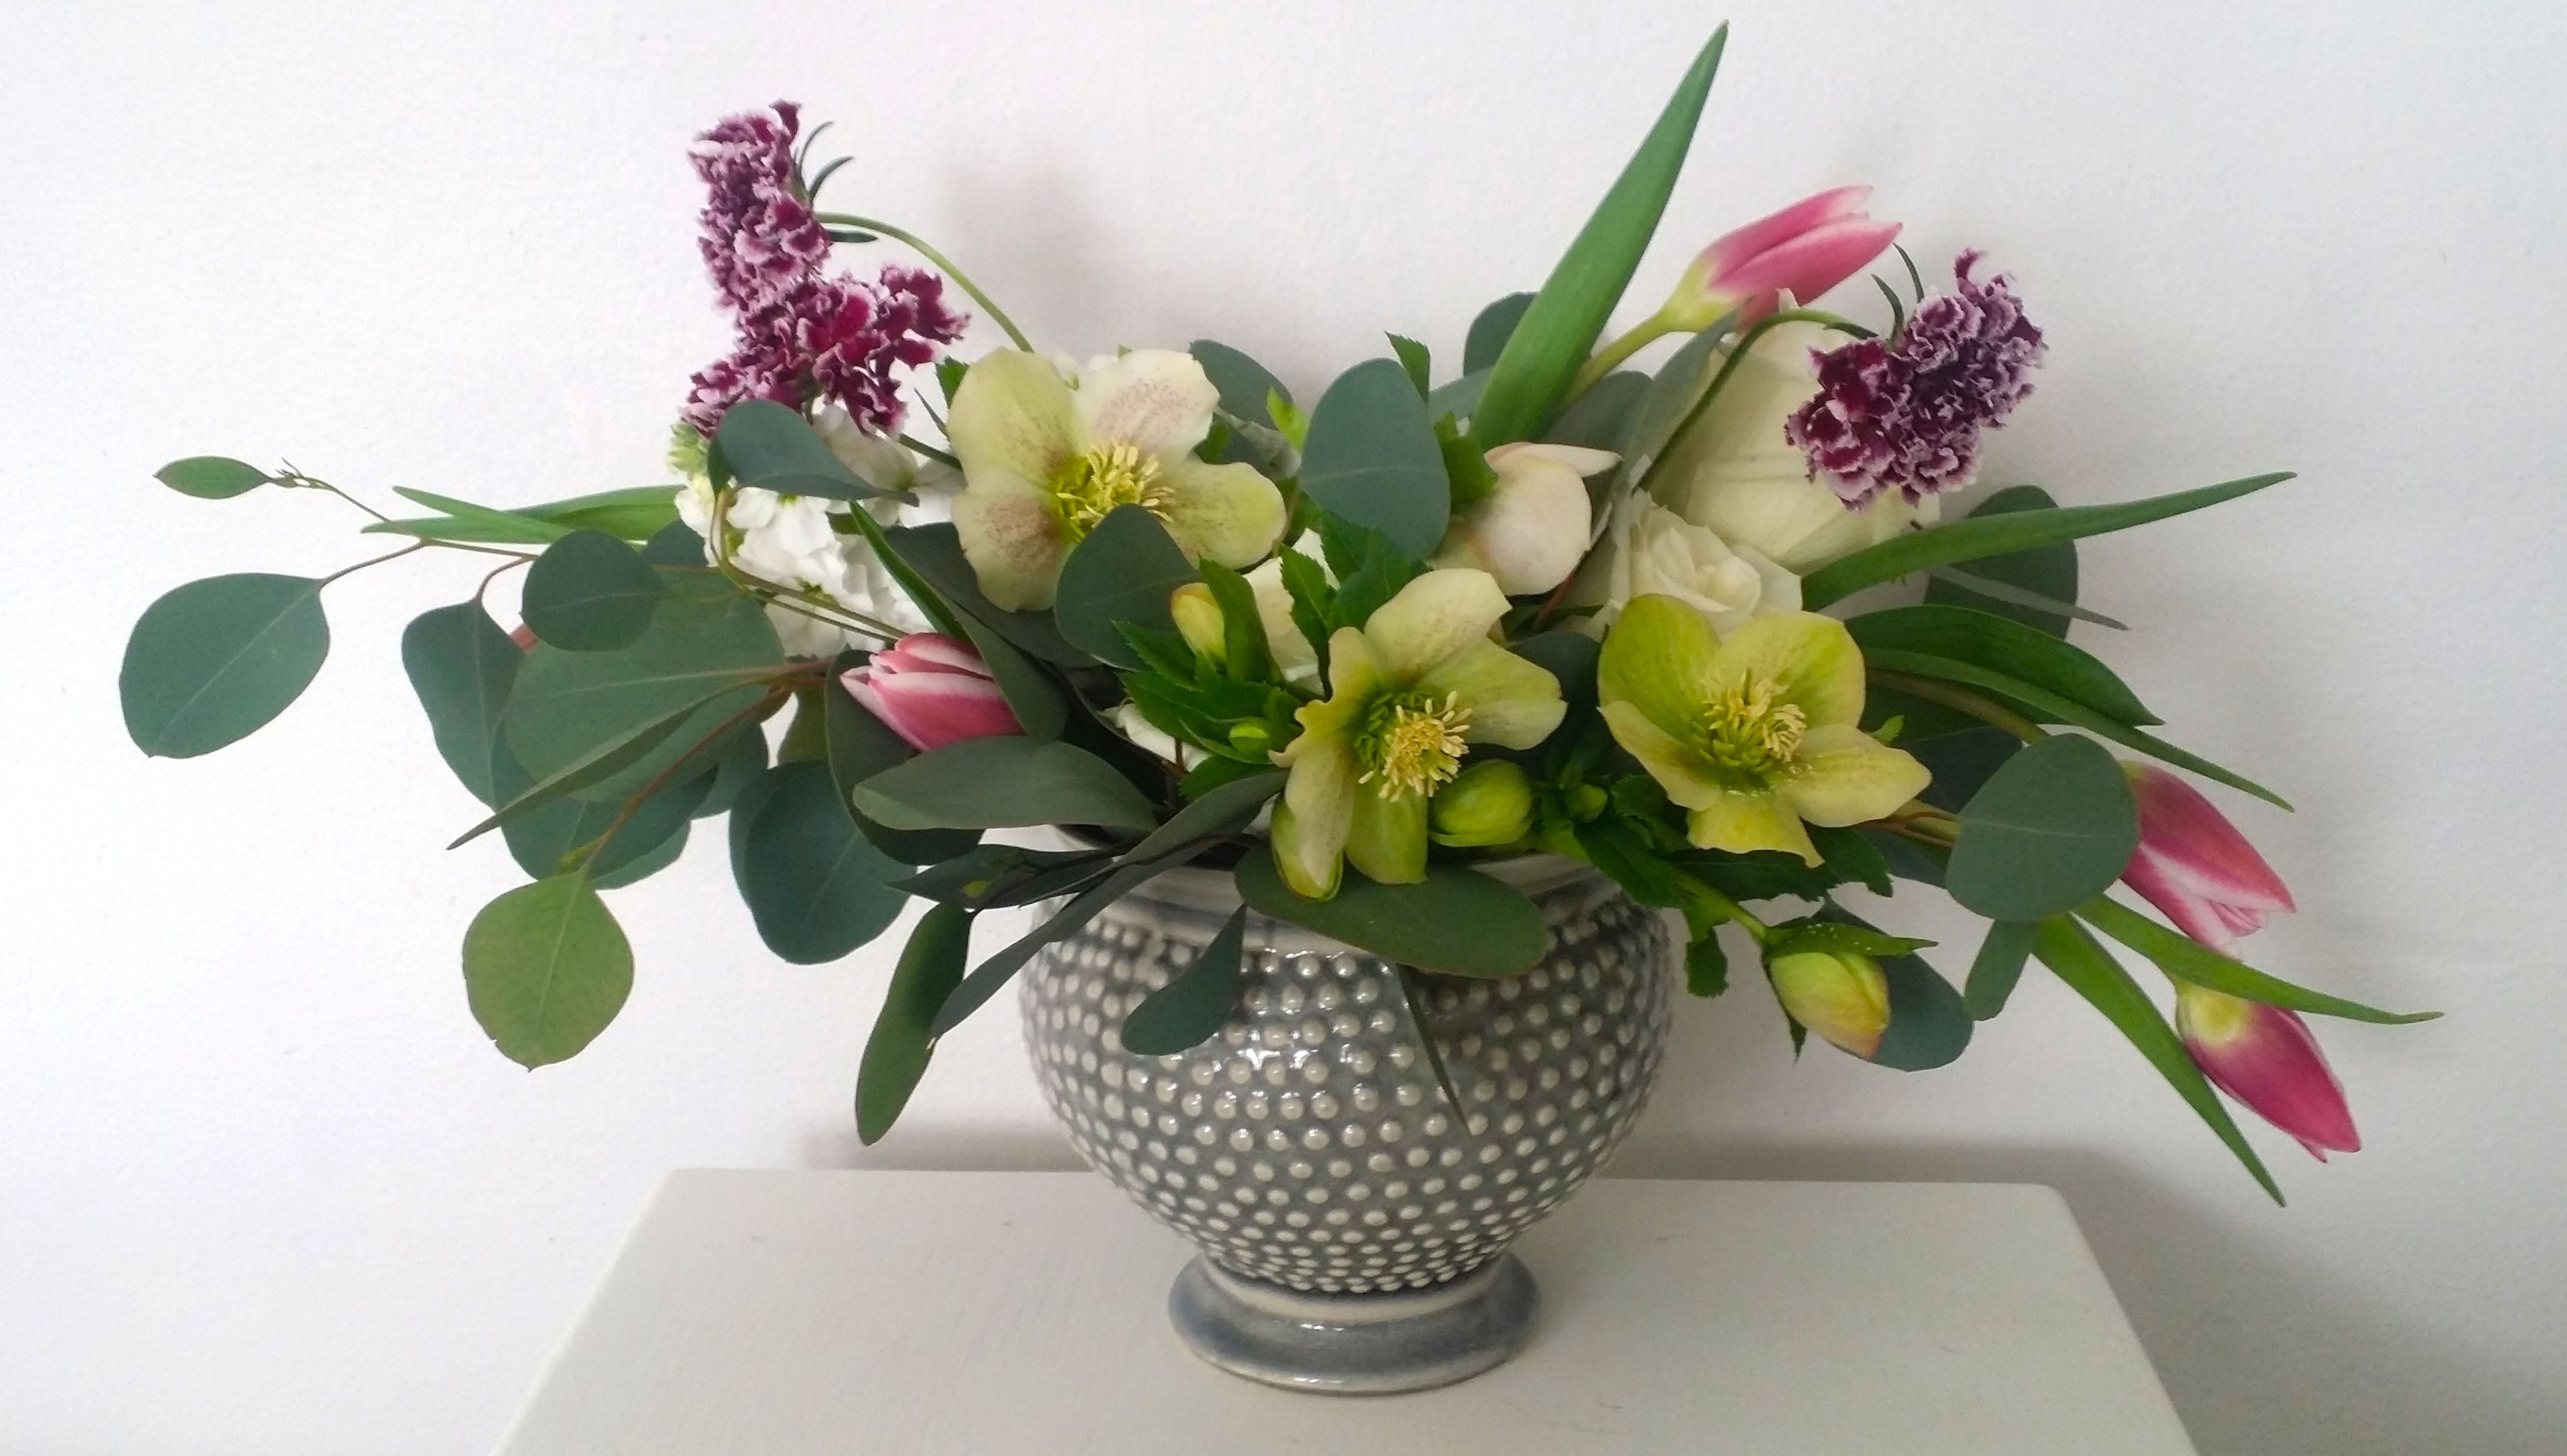 Join us for our seasonal arranging class with Snapdragon Studio STL! Class is March 19th, call to reserve your spot!